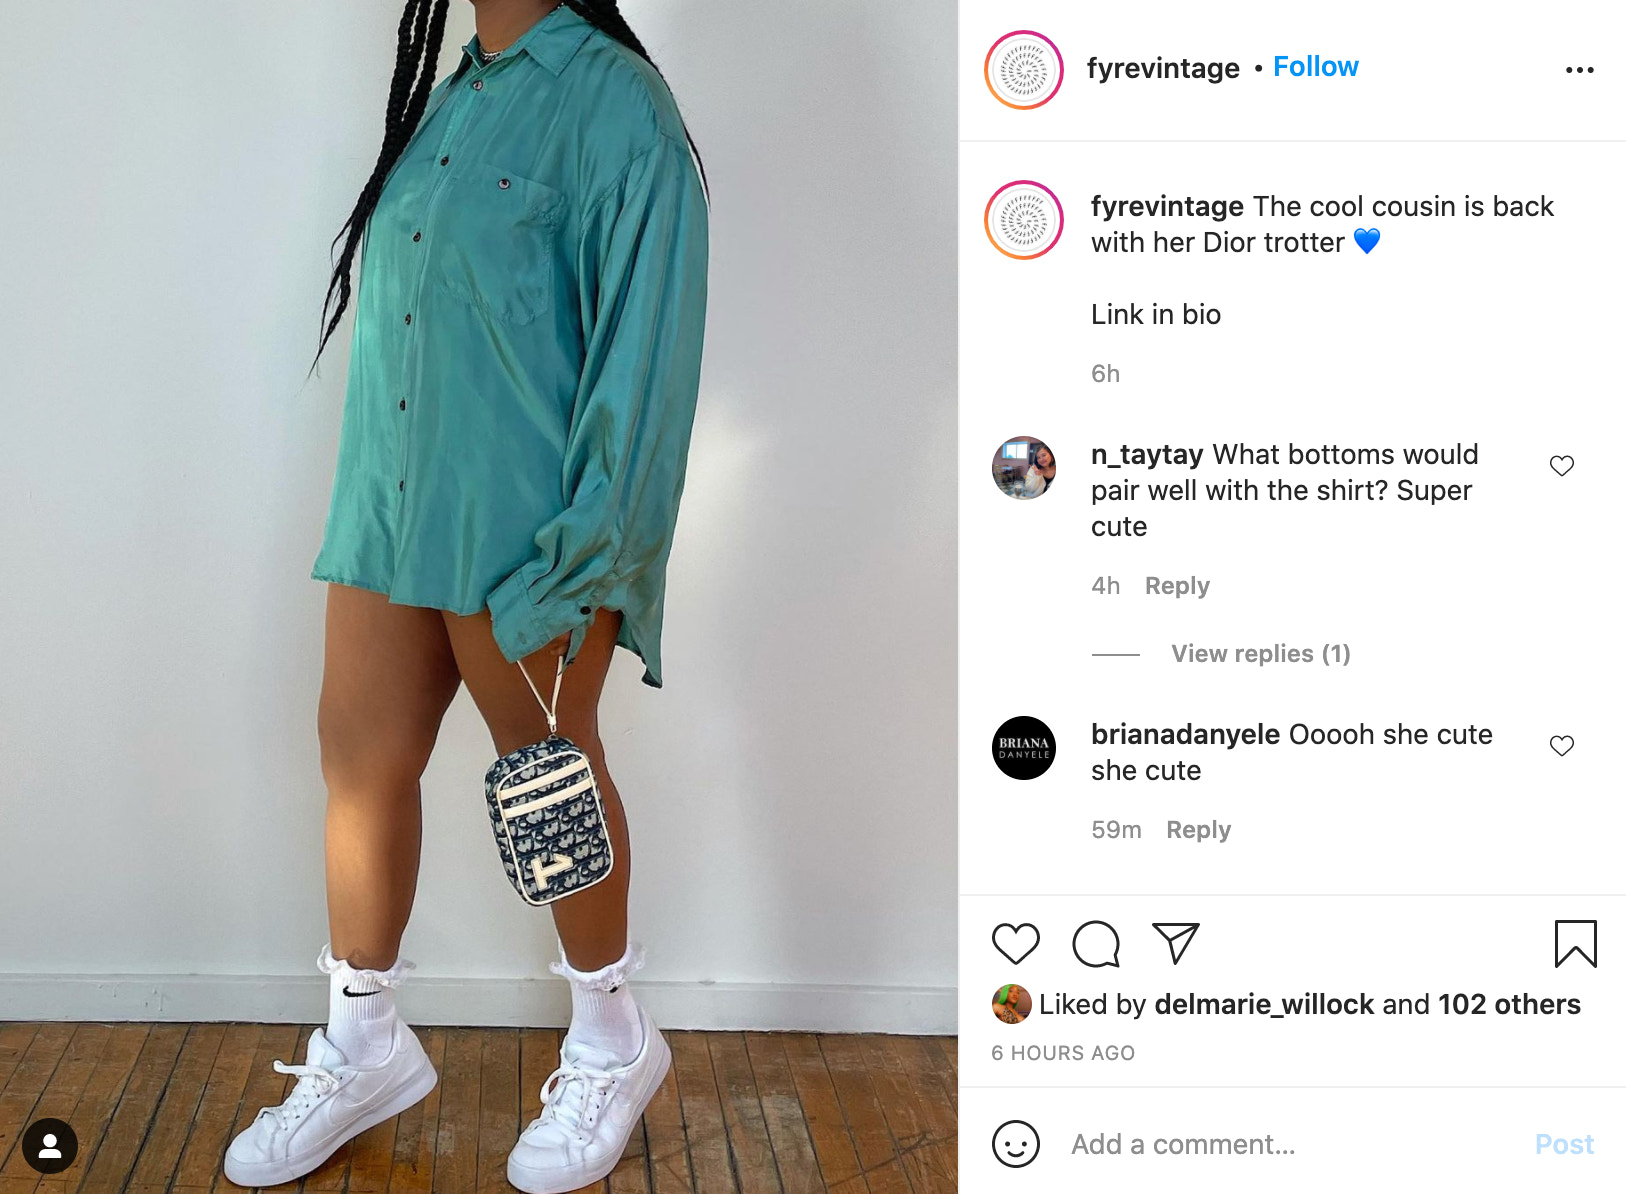 Instagram post from FYRE VINTAGE featuring a model wearing a long teal shirt